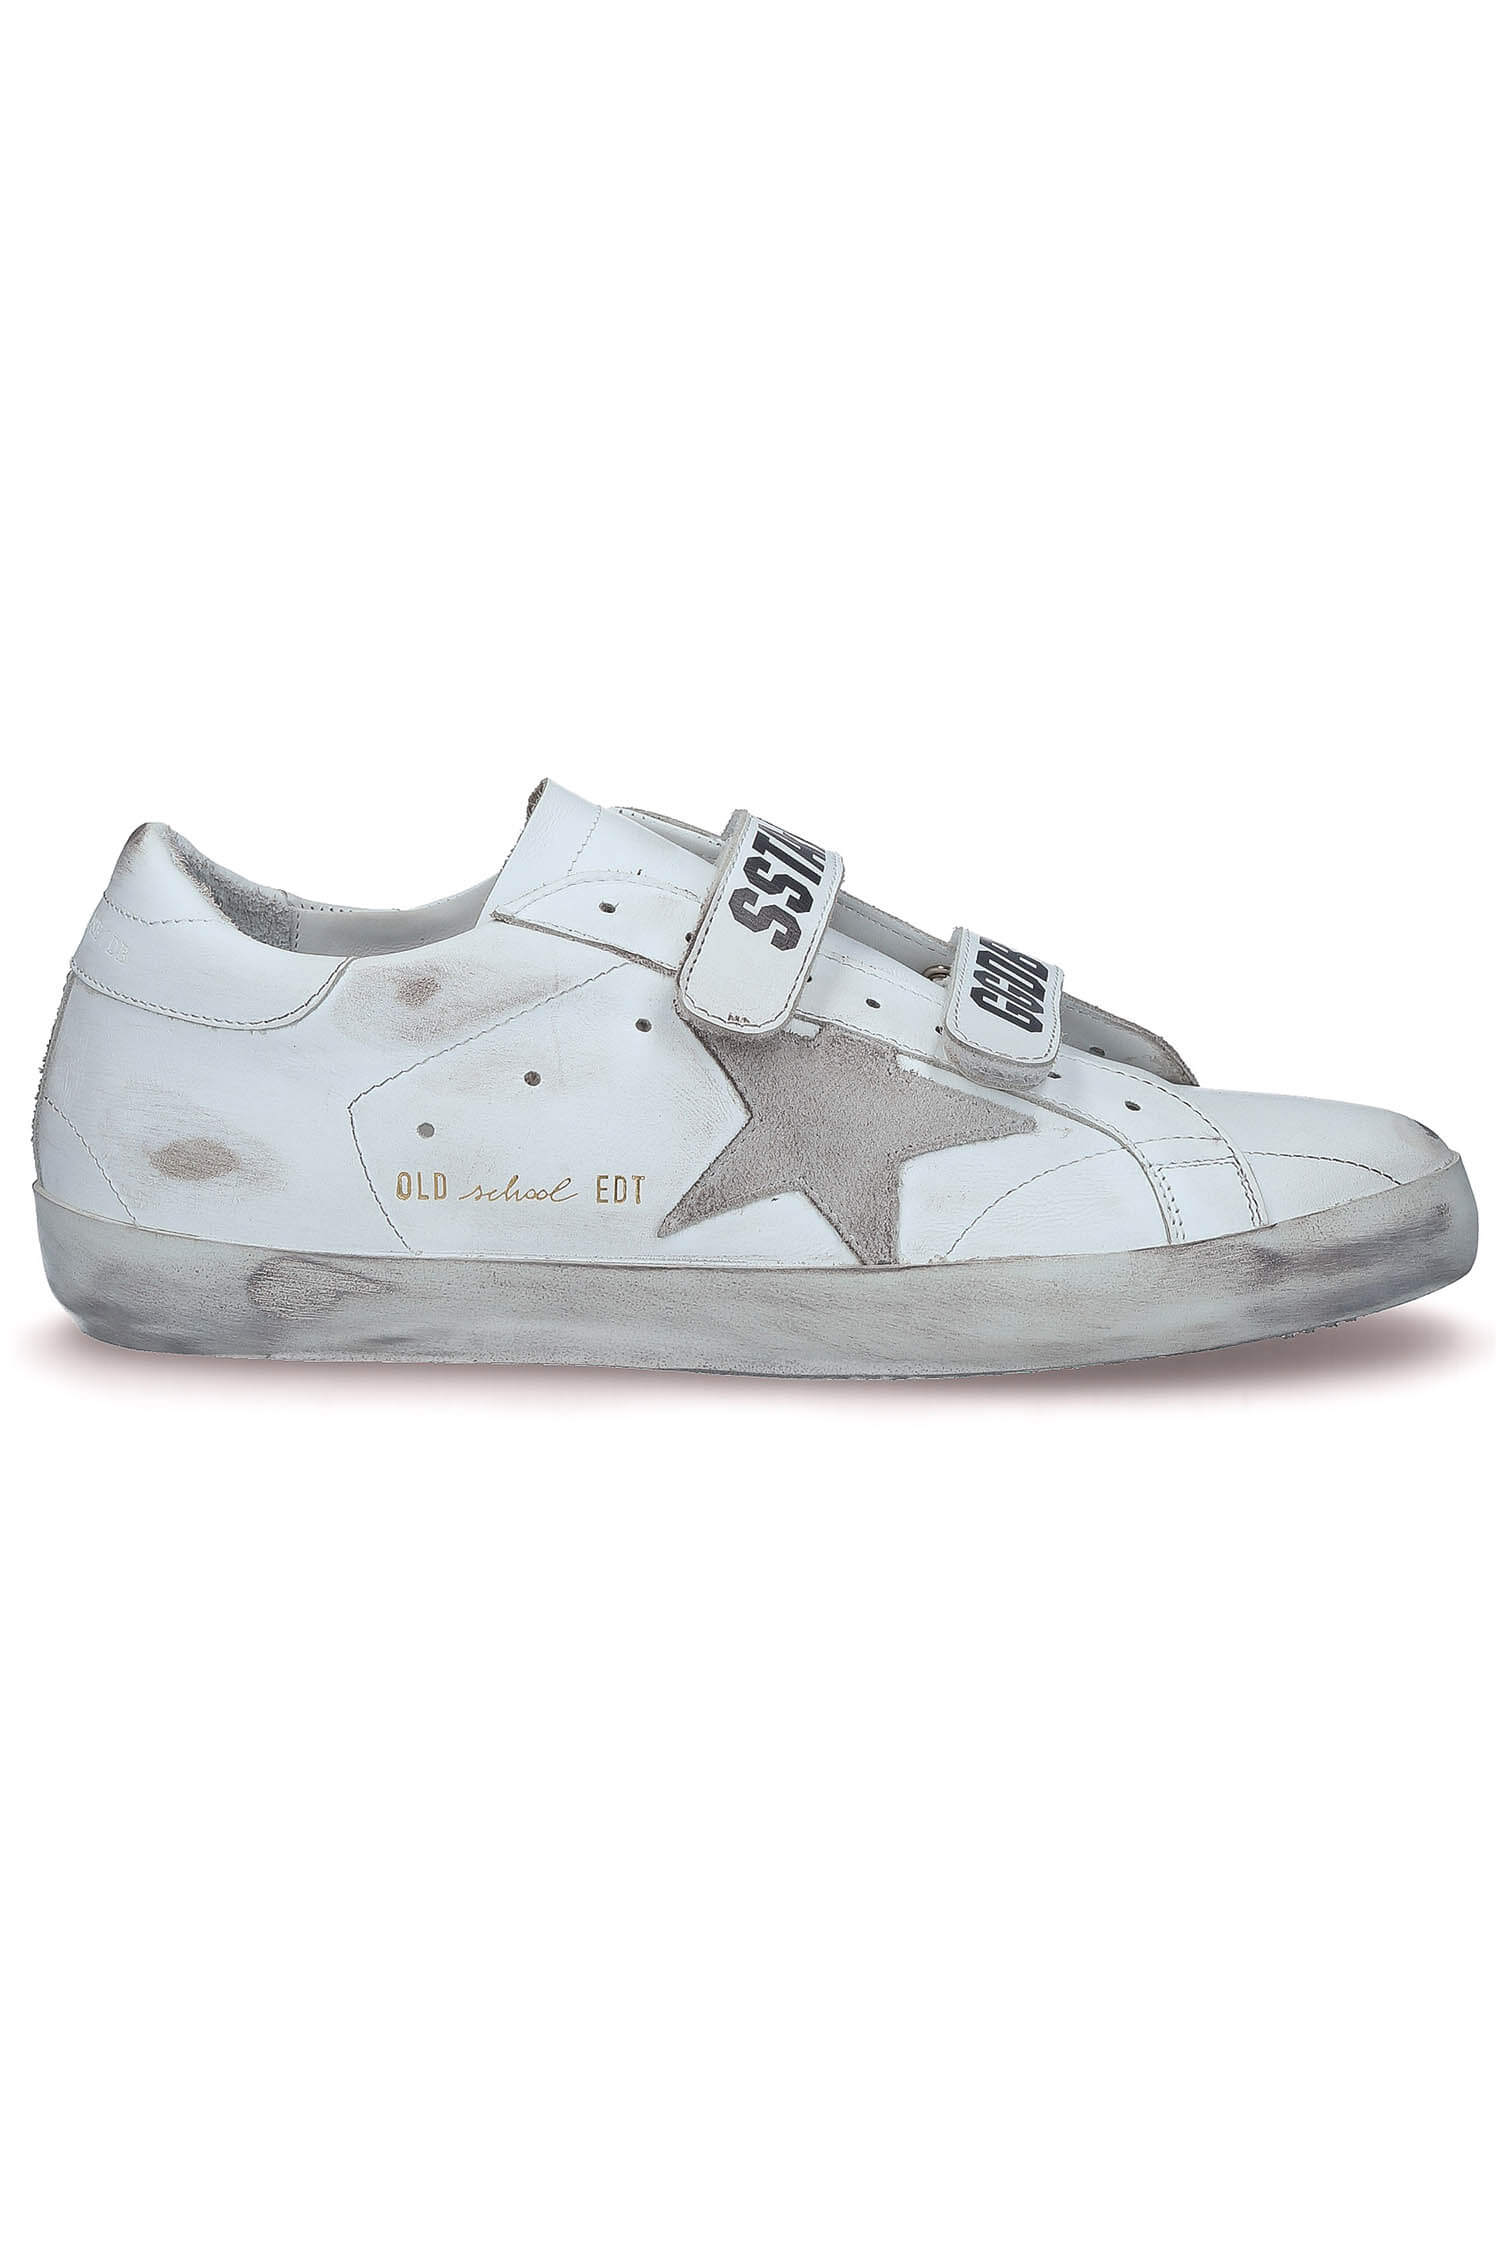 5d5ef9fd73b6 Golden Goose   Sneakers Superstar Old School White. Appuyez pour zoomer